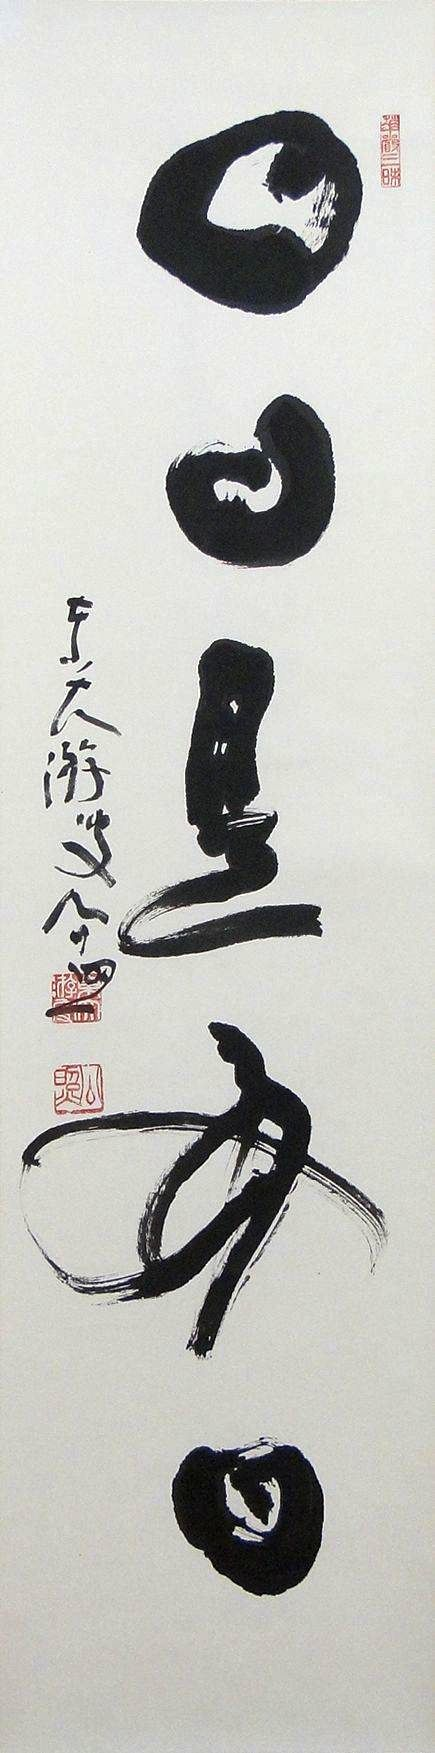 Shimizu Kosho 清水公照 (1911-1999), Every Day is a Good Day.